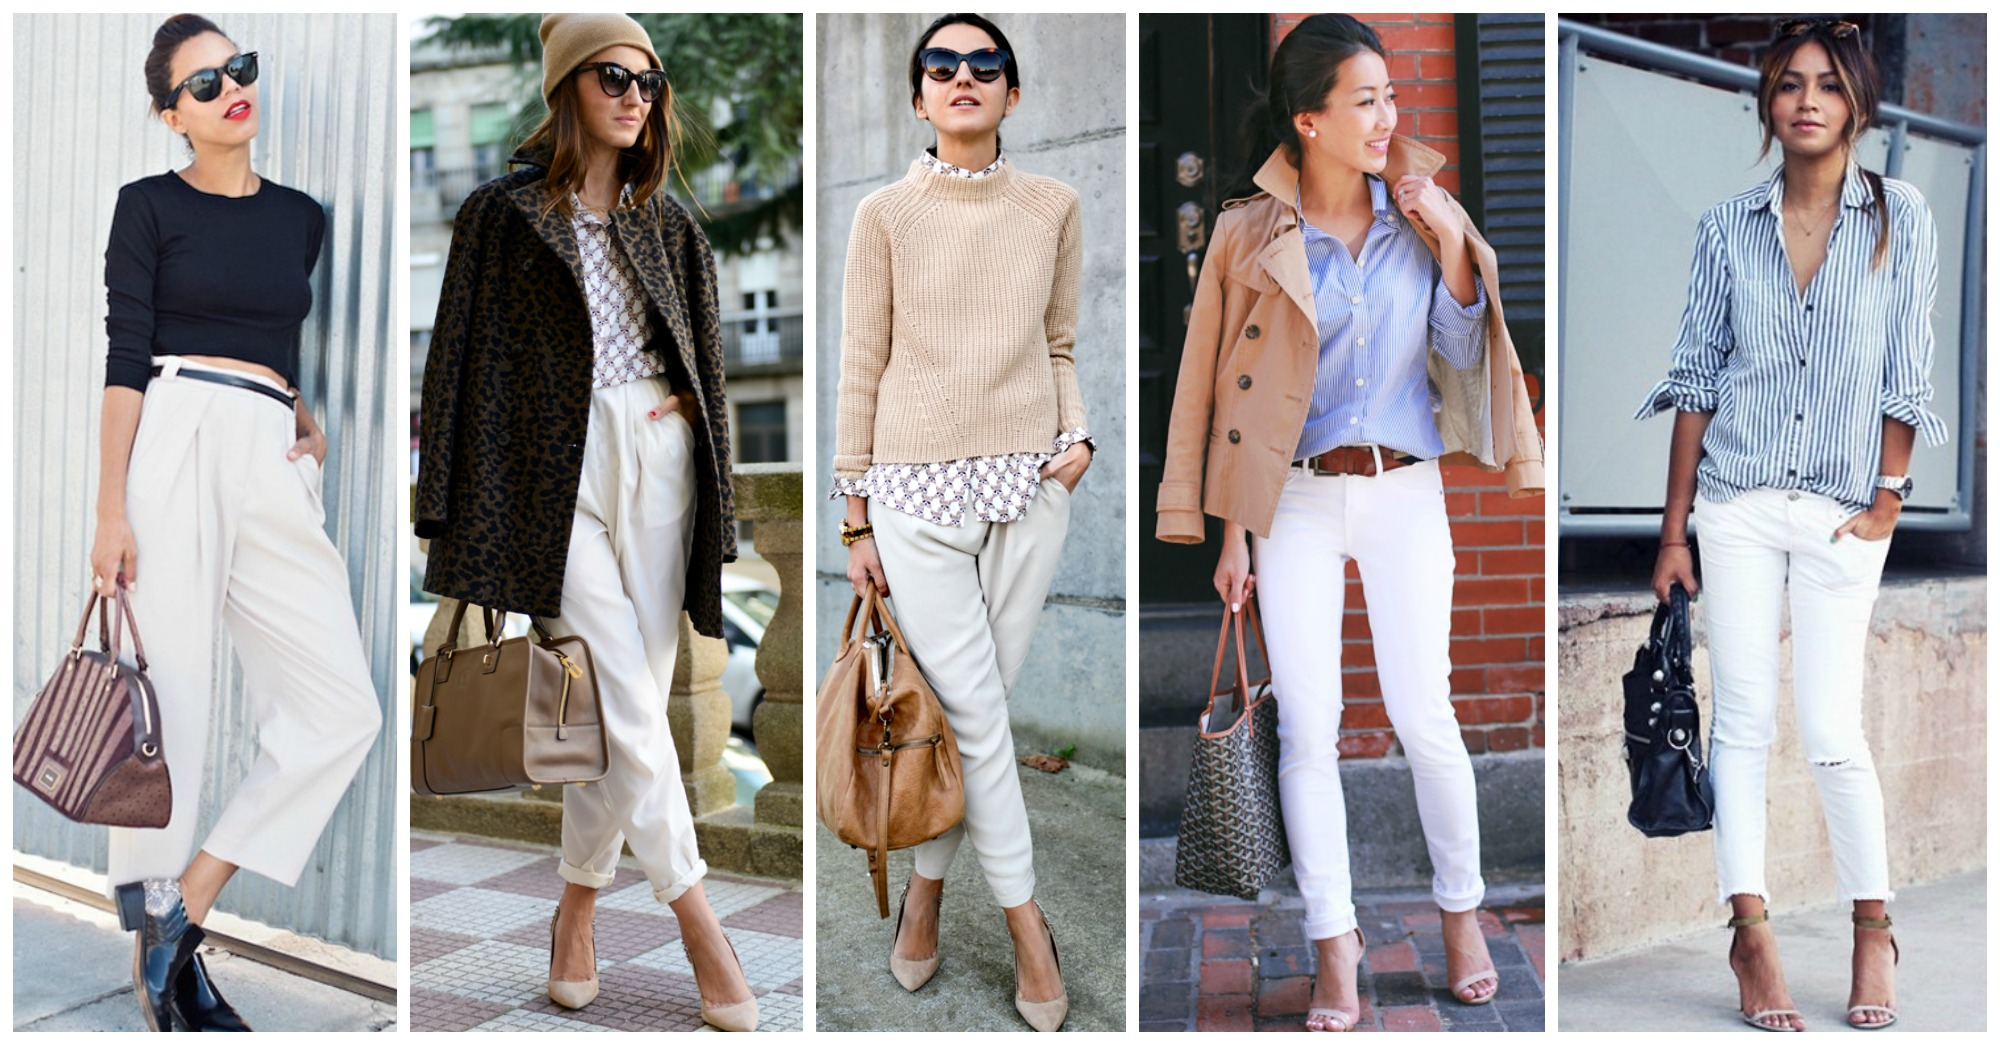 10 Chic Ways to Wear Your White Pants in Fall